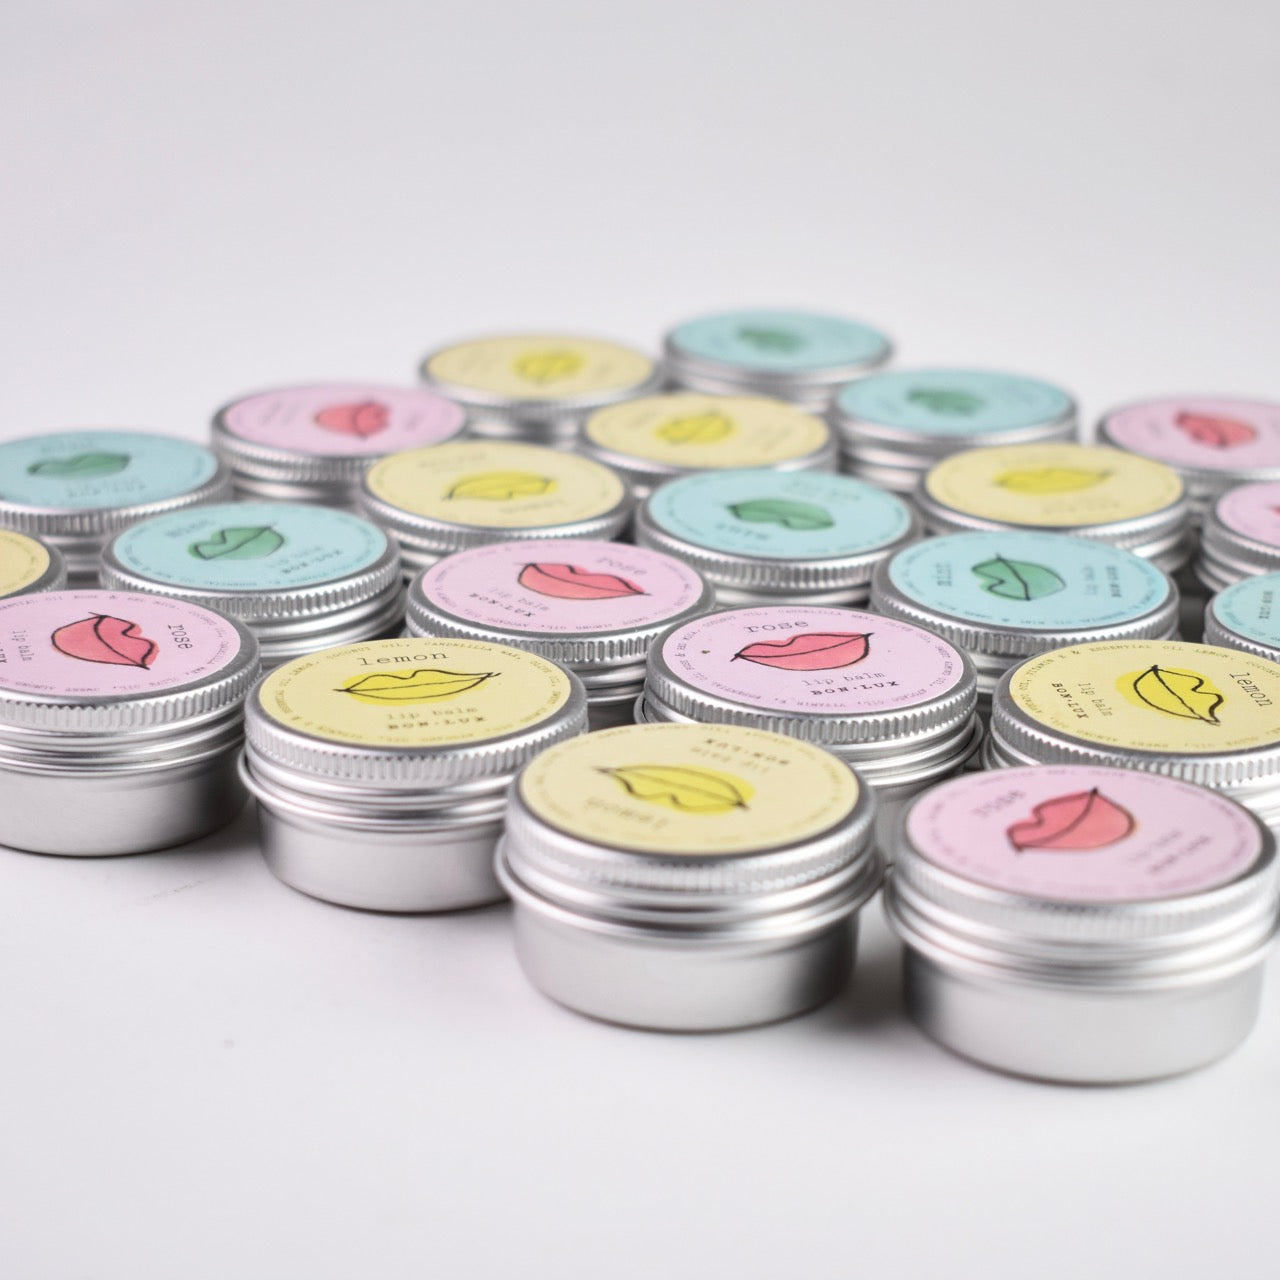 Nourishing Lip Balm in 'Mint' - BON LUX